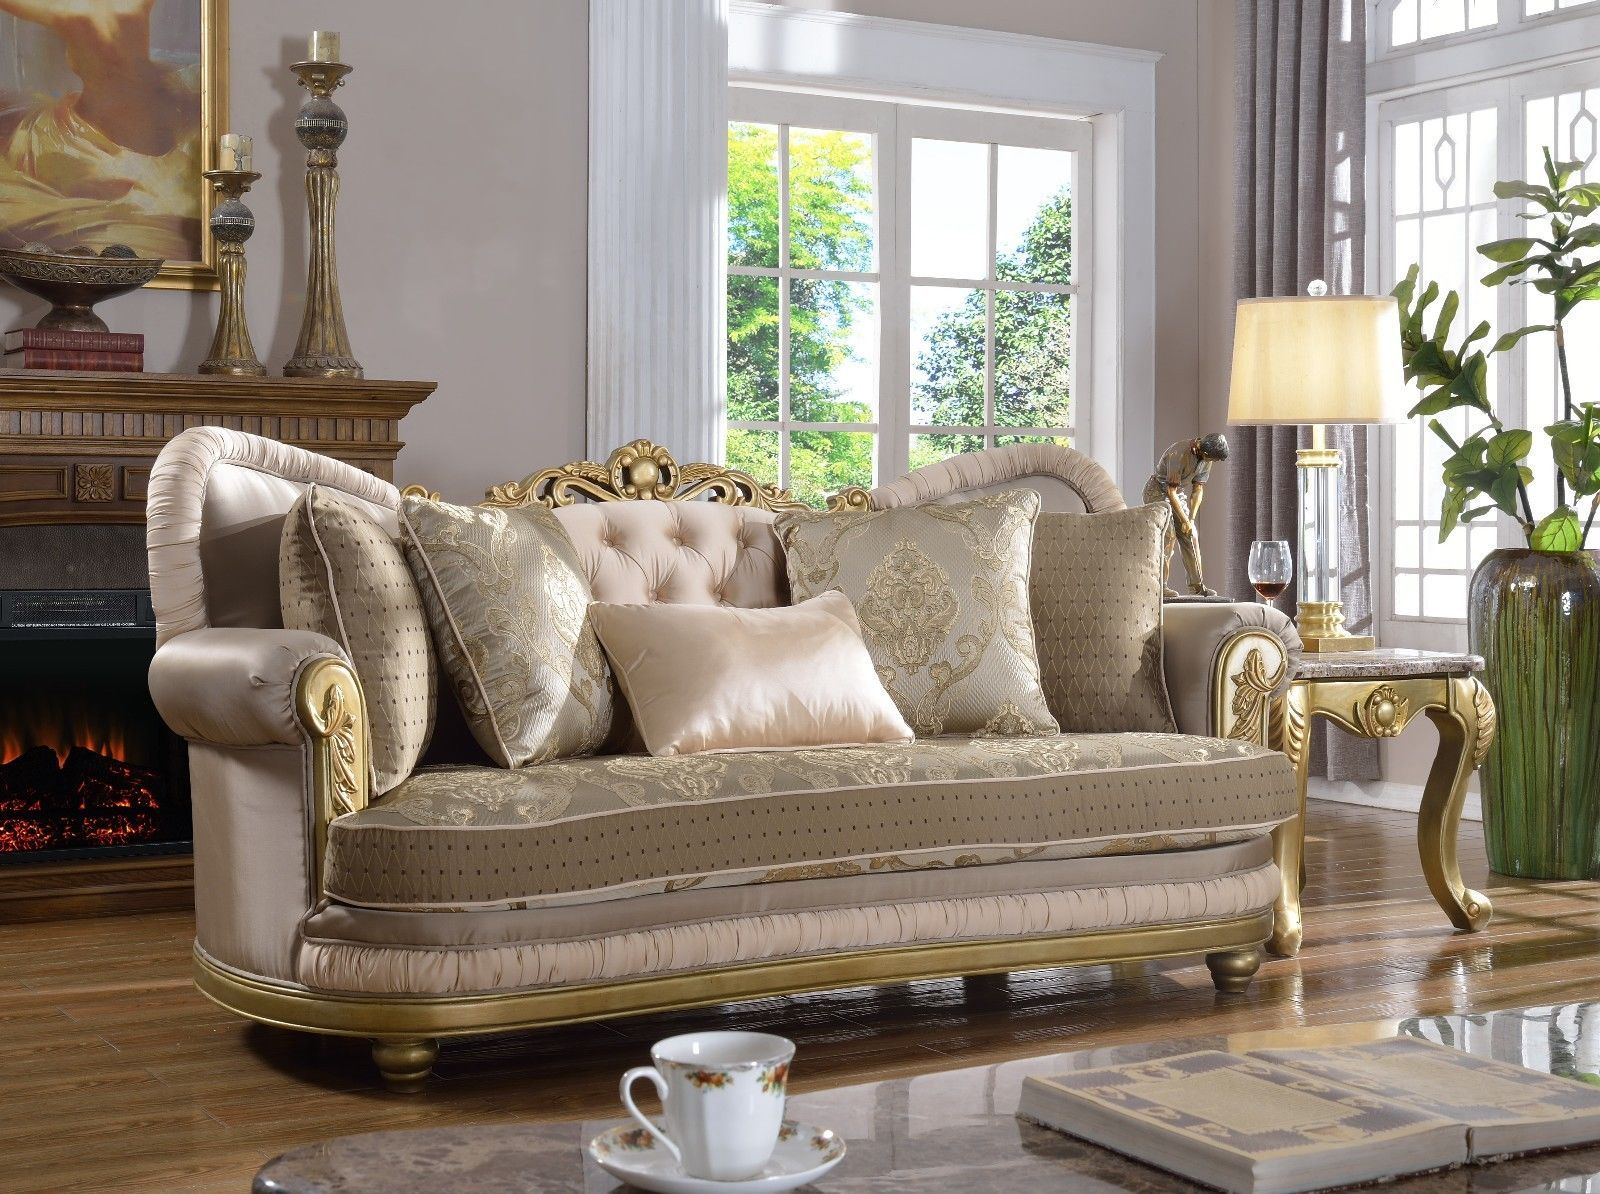 Meridian 658 Living Room Sofa Set 3pc. Tufted Rich Gold Traditional Style